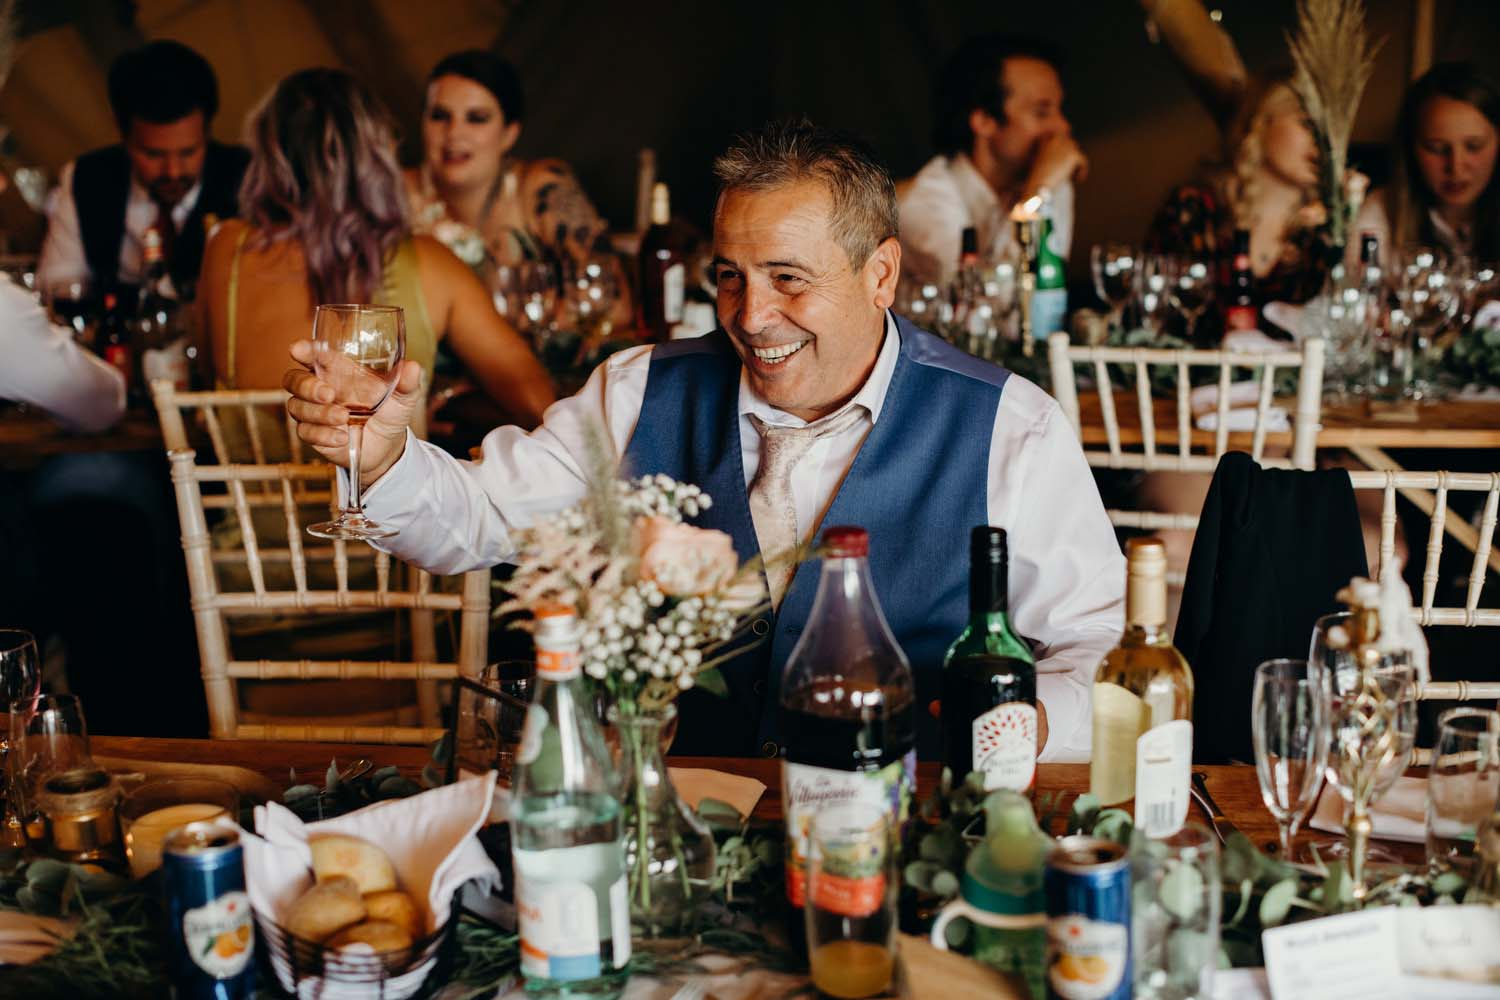 Father of bride raises glass